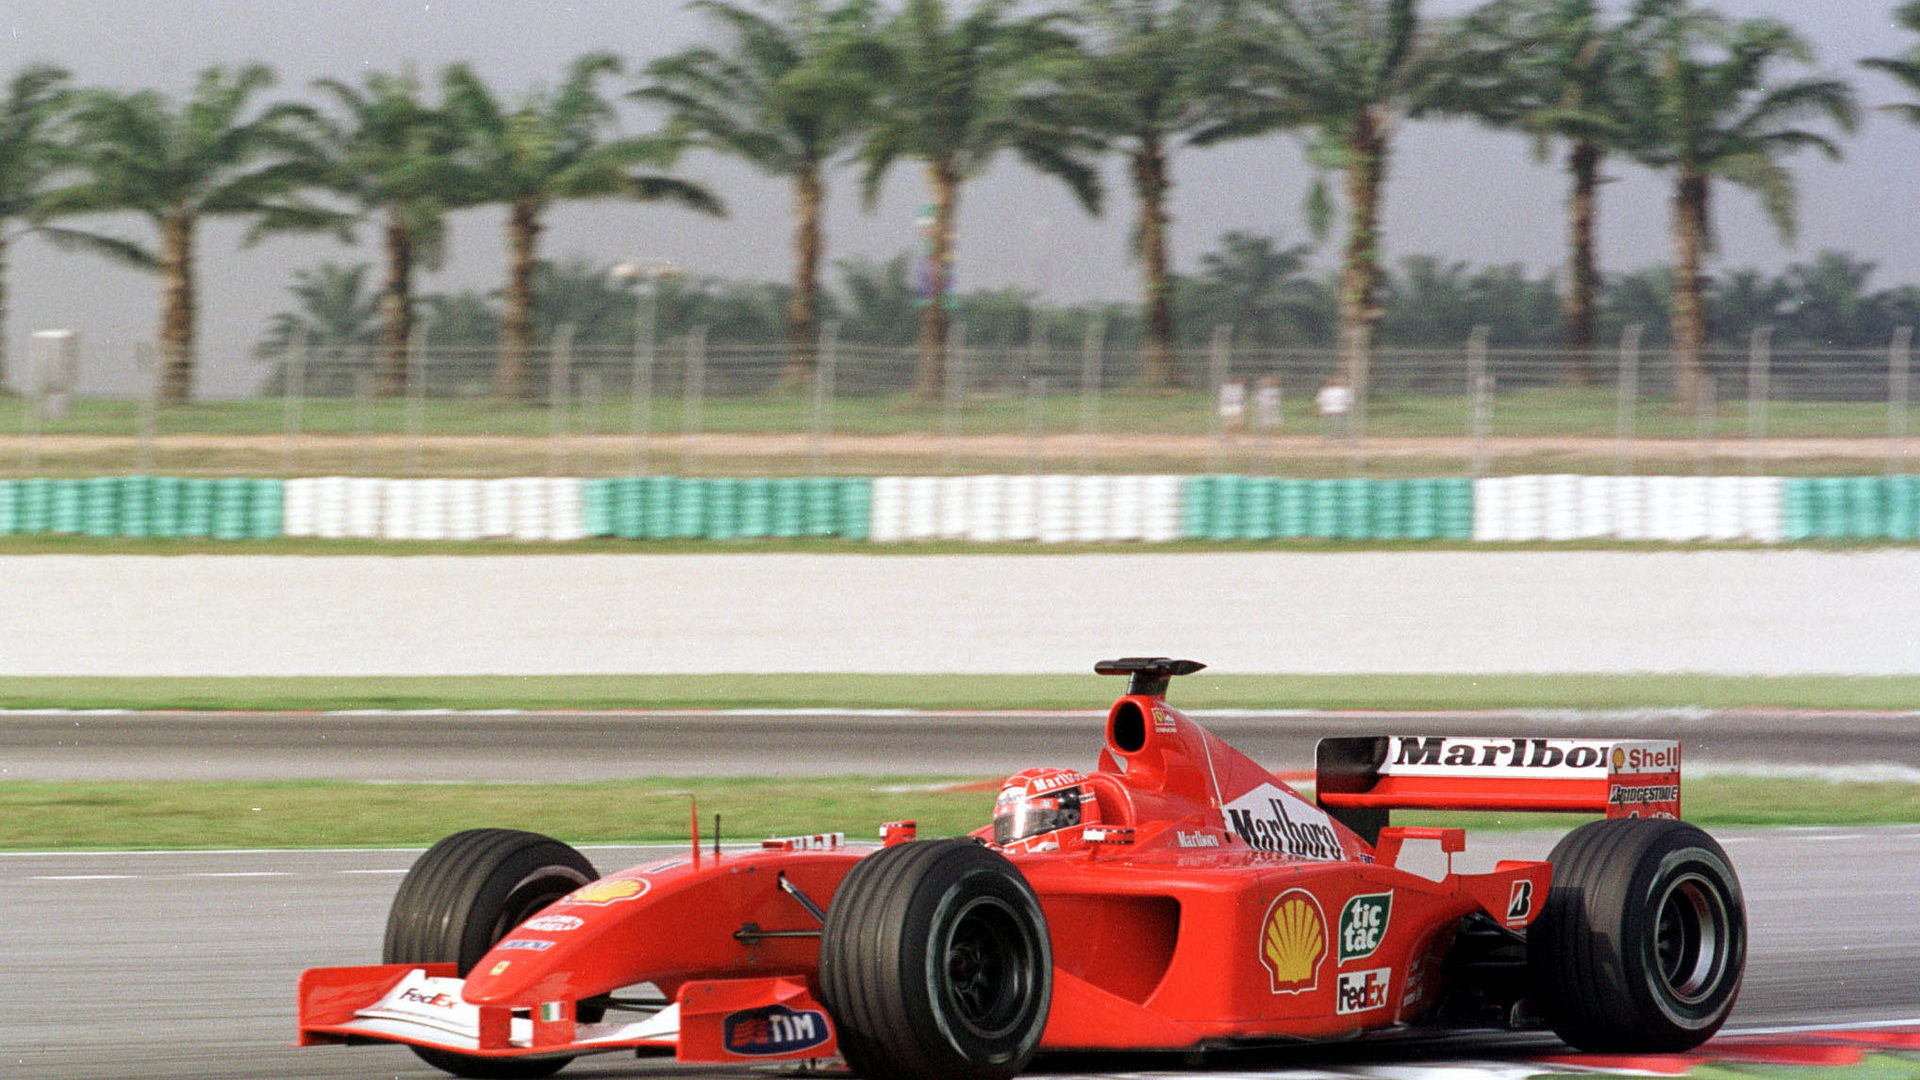 ferrari f2001 michael schumacher - photo #32